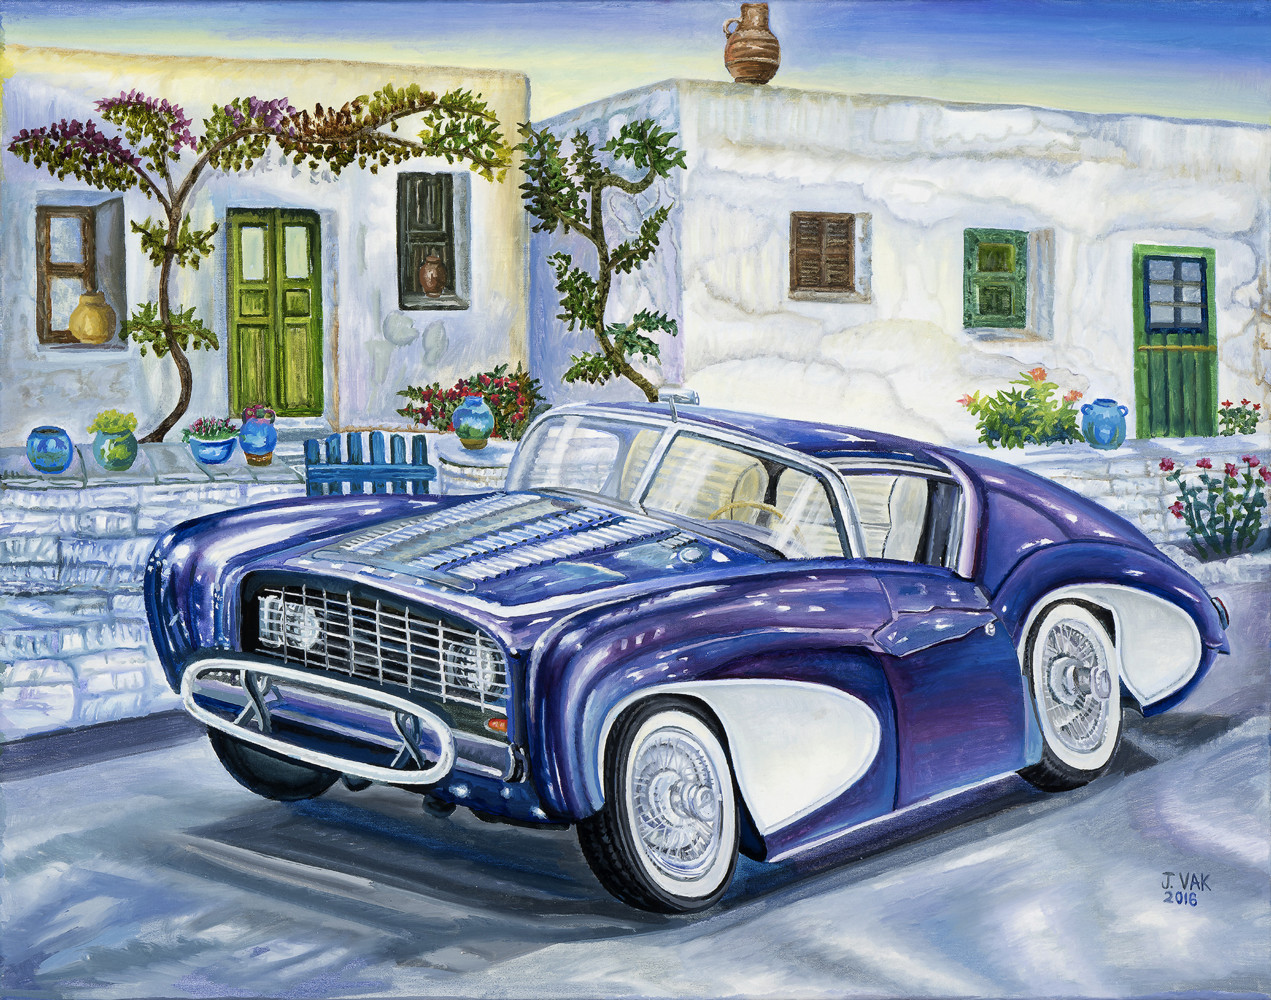 1955 Flajole Forerunner Coupe Concept 22 X 28 Oil on canvas $2800 2016